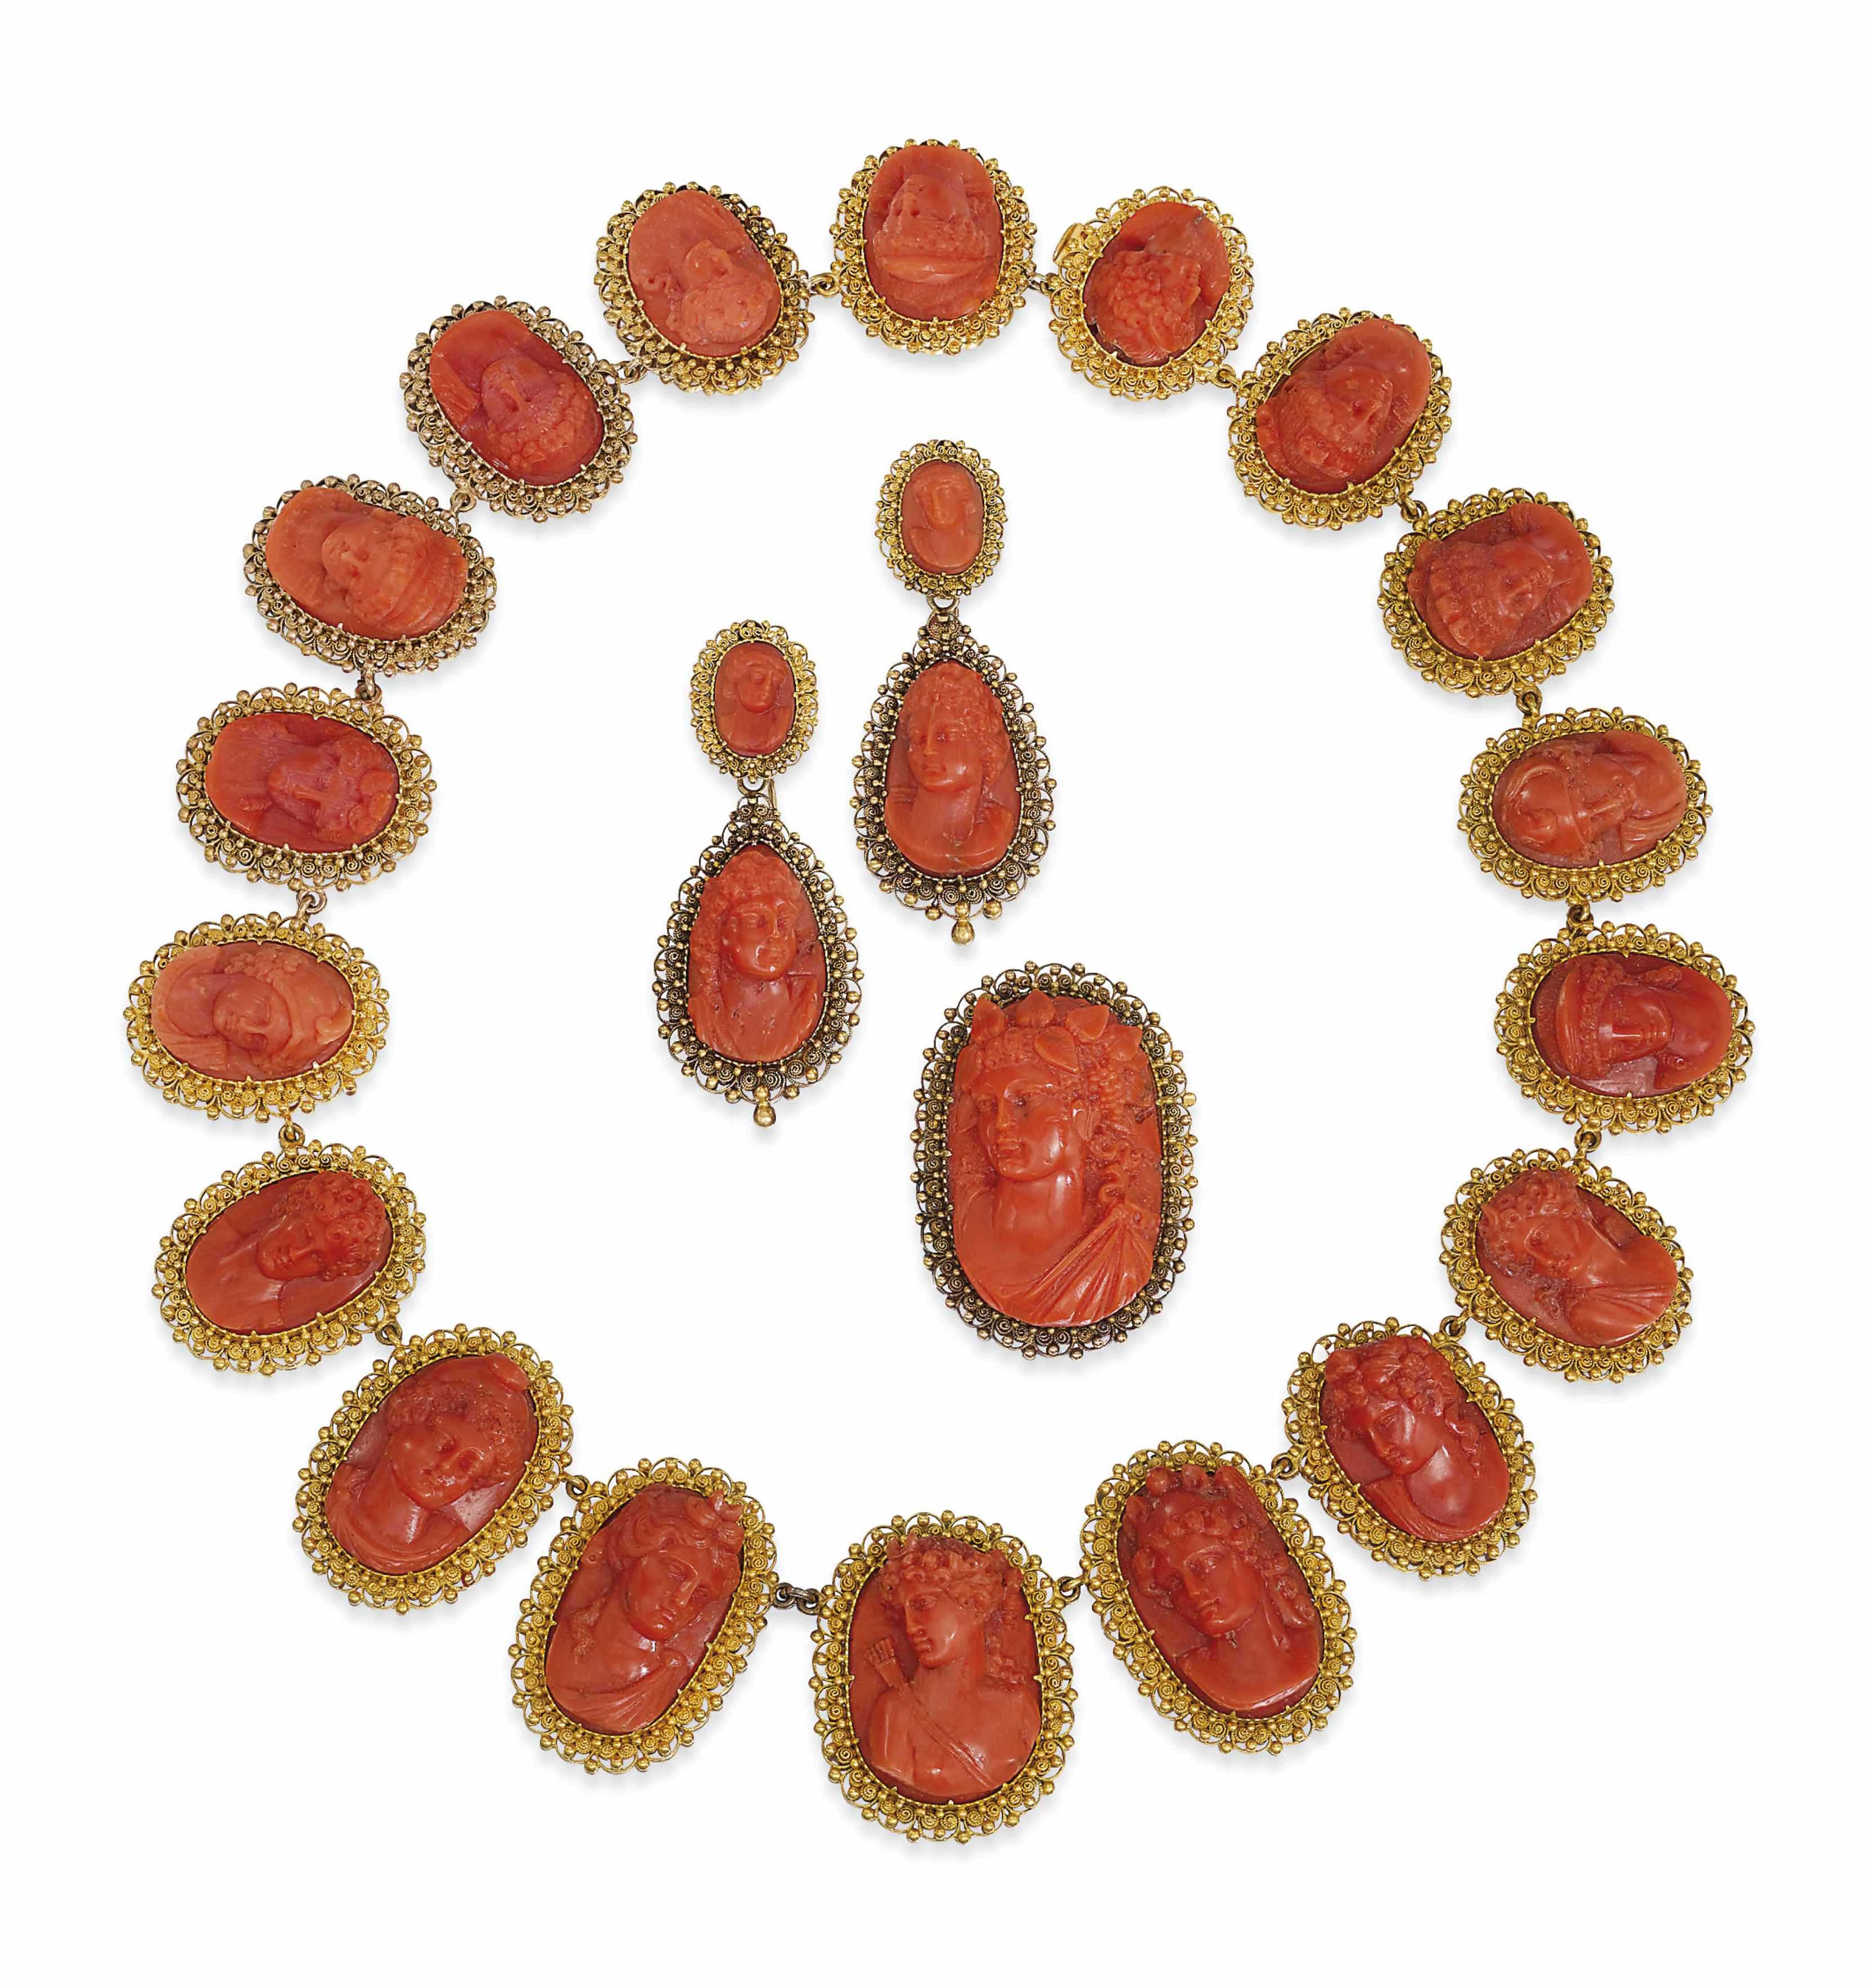 A SUITE OF EARLY 19TH CENTURY CORAL CAMEO JEWELLERY